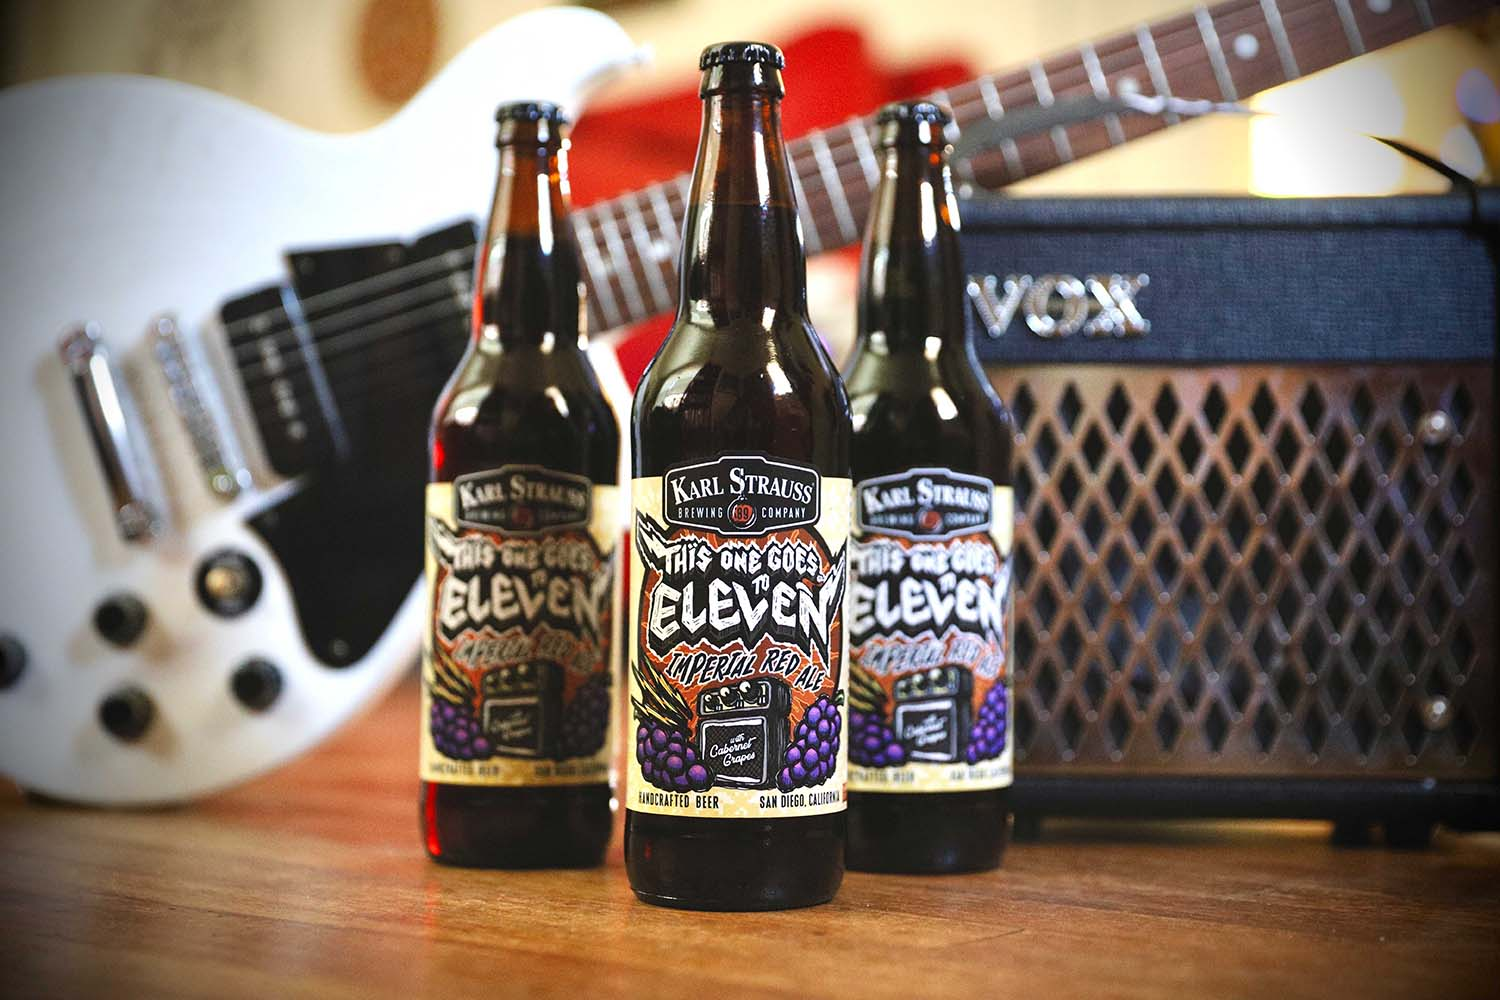 This One Goes to Eleven Imperial Red Ale